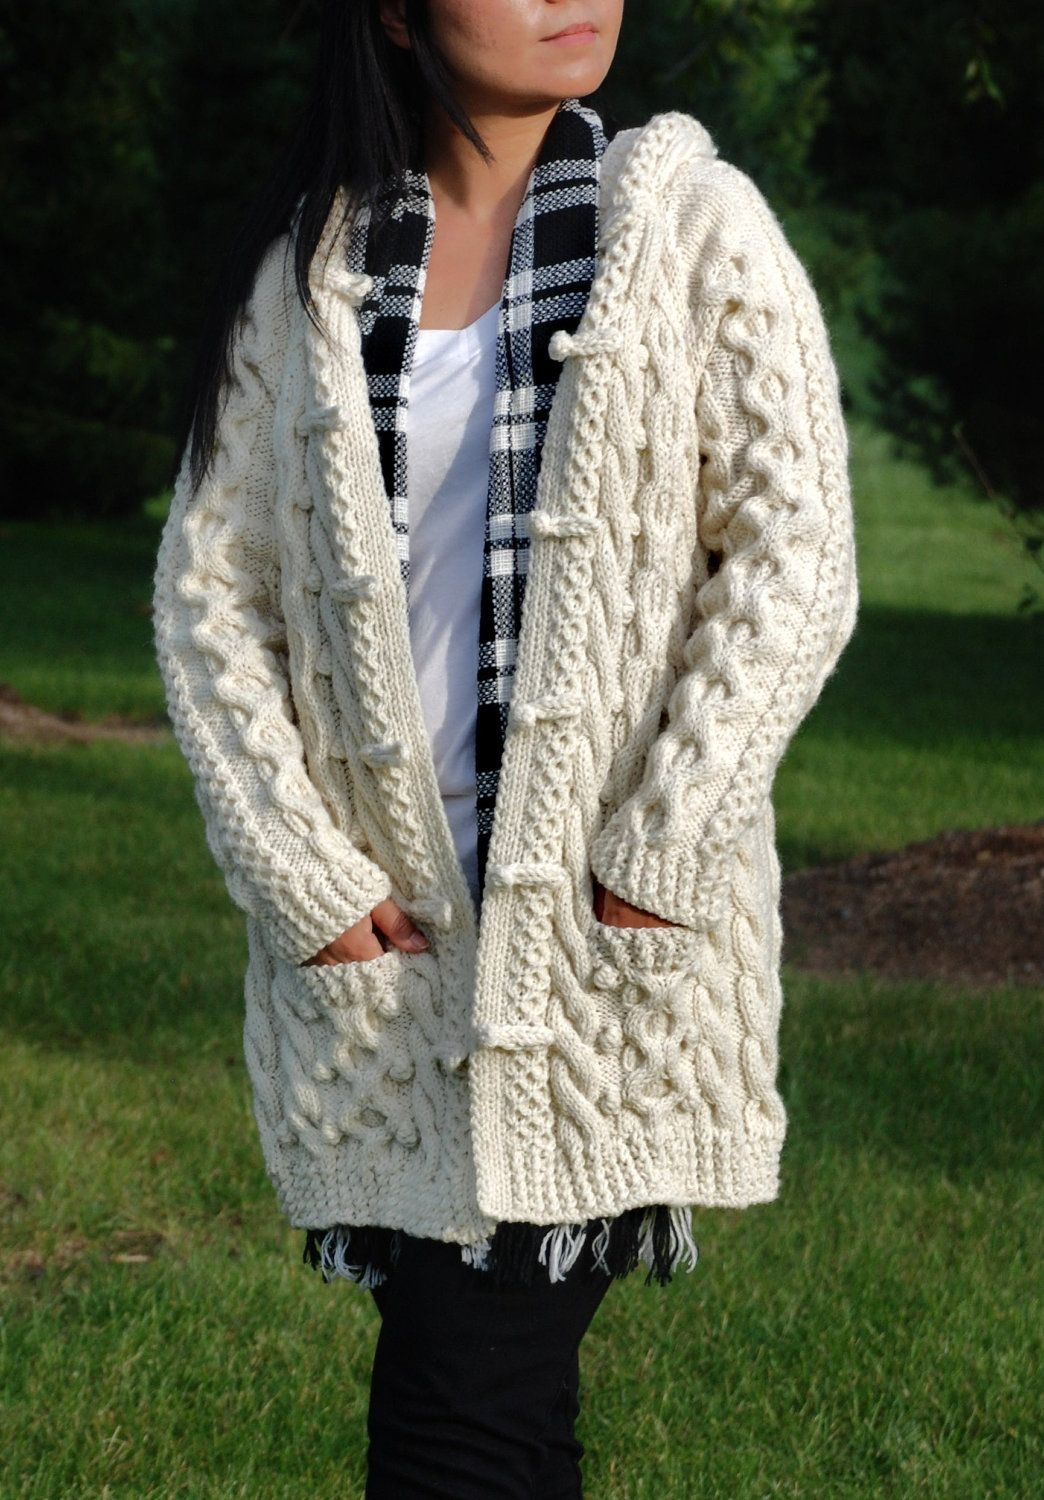 Hand Knit Women Chunky Cable Aran Irish Fisherman Sweater Coat Cardigan Top  Whole Wool Ivory White S M L XL.  295.00 1dfb9e1e3